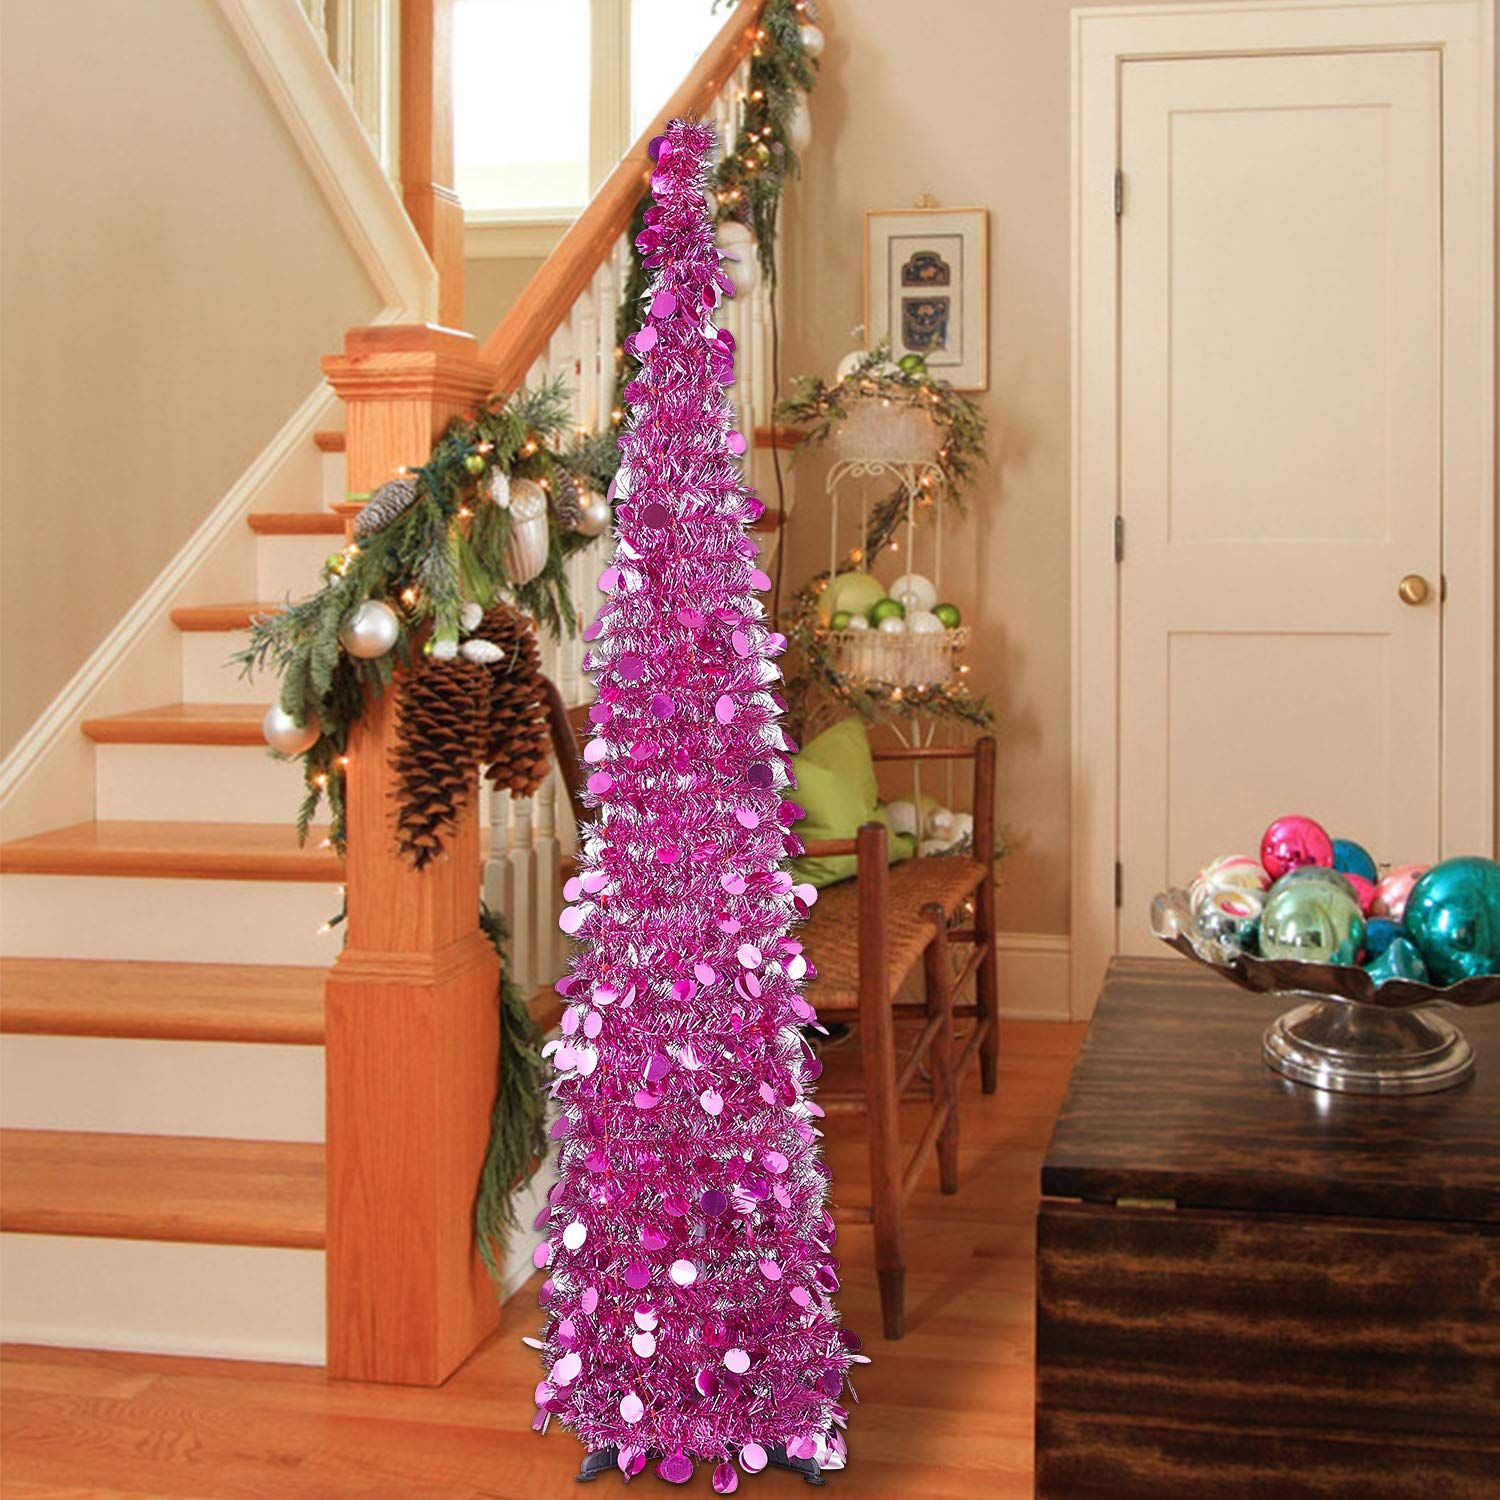 Macting 5ft Pop Up Christmas Tinsel Tree With Stand Easyassembly